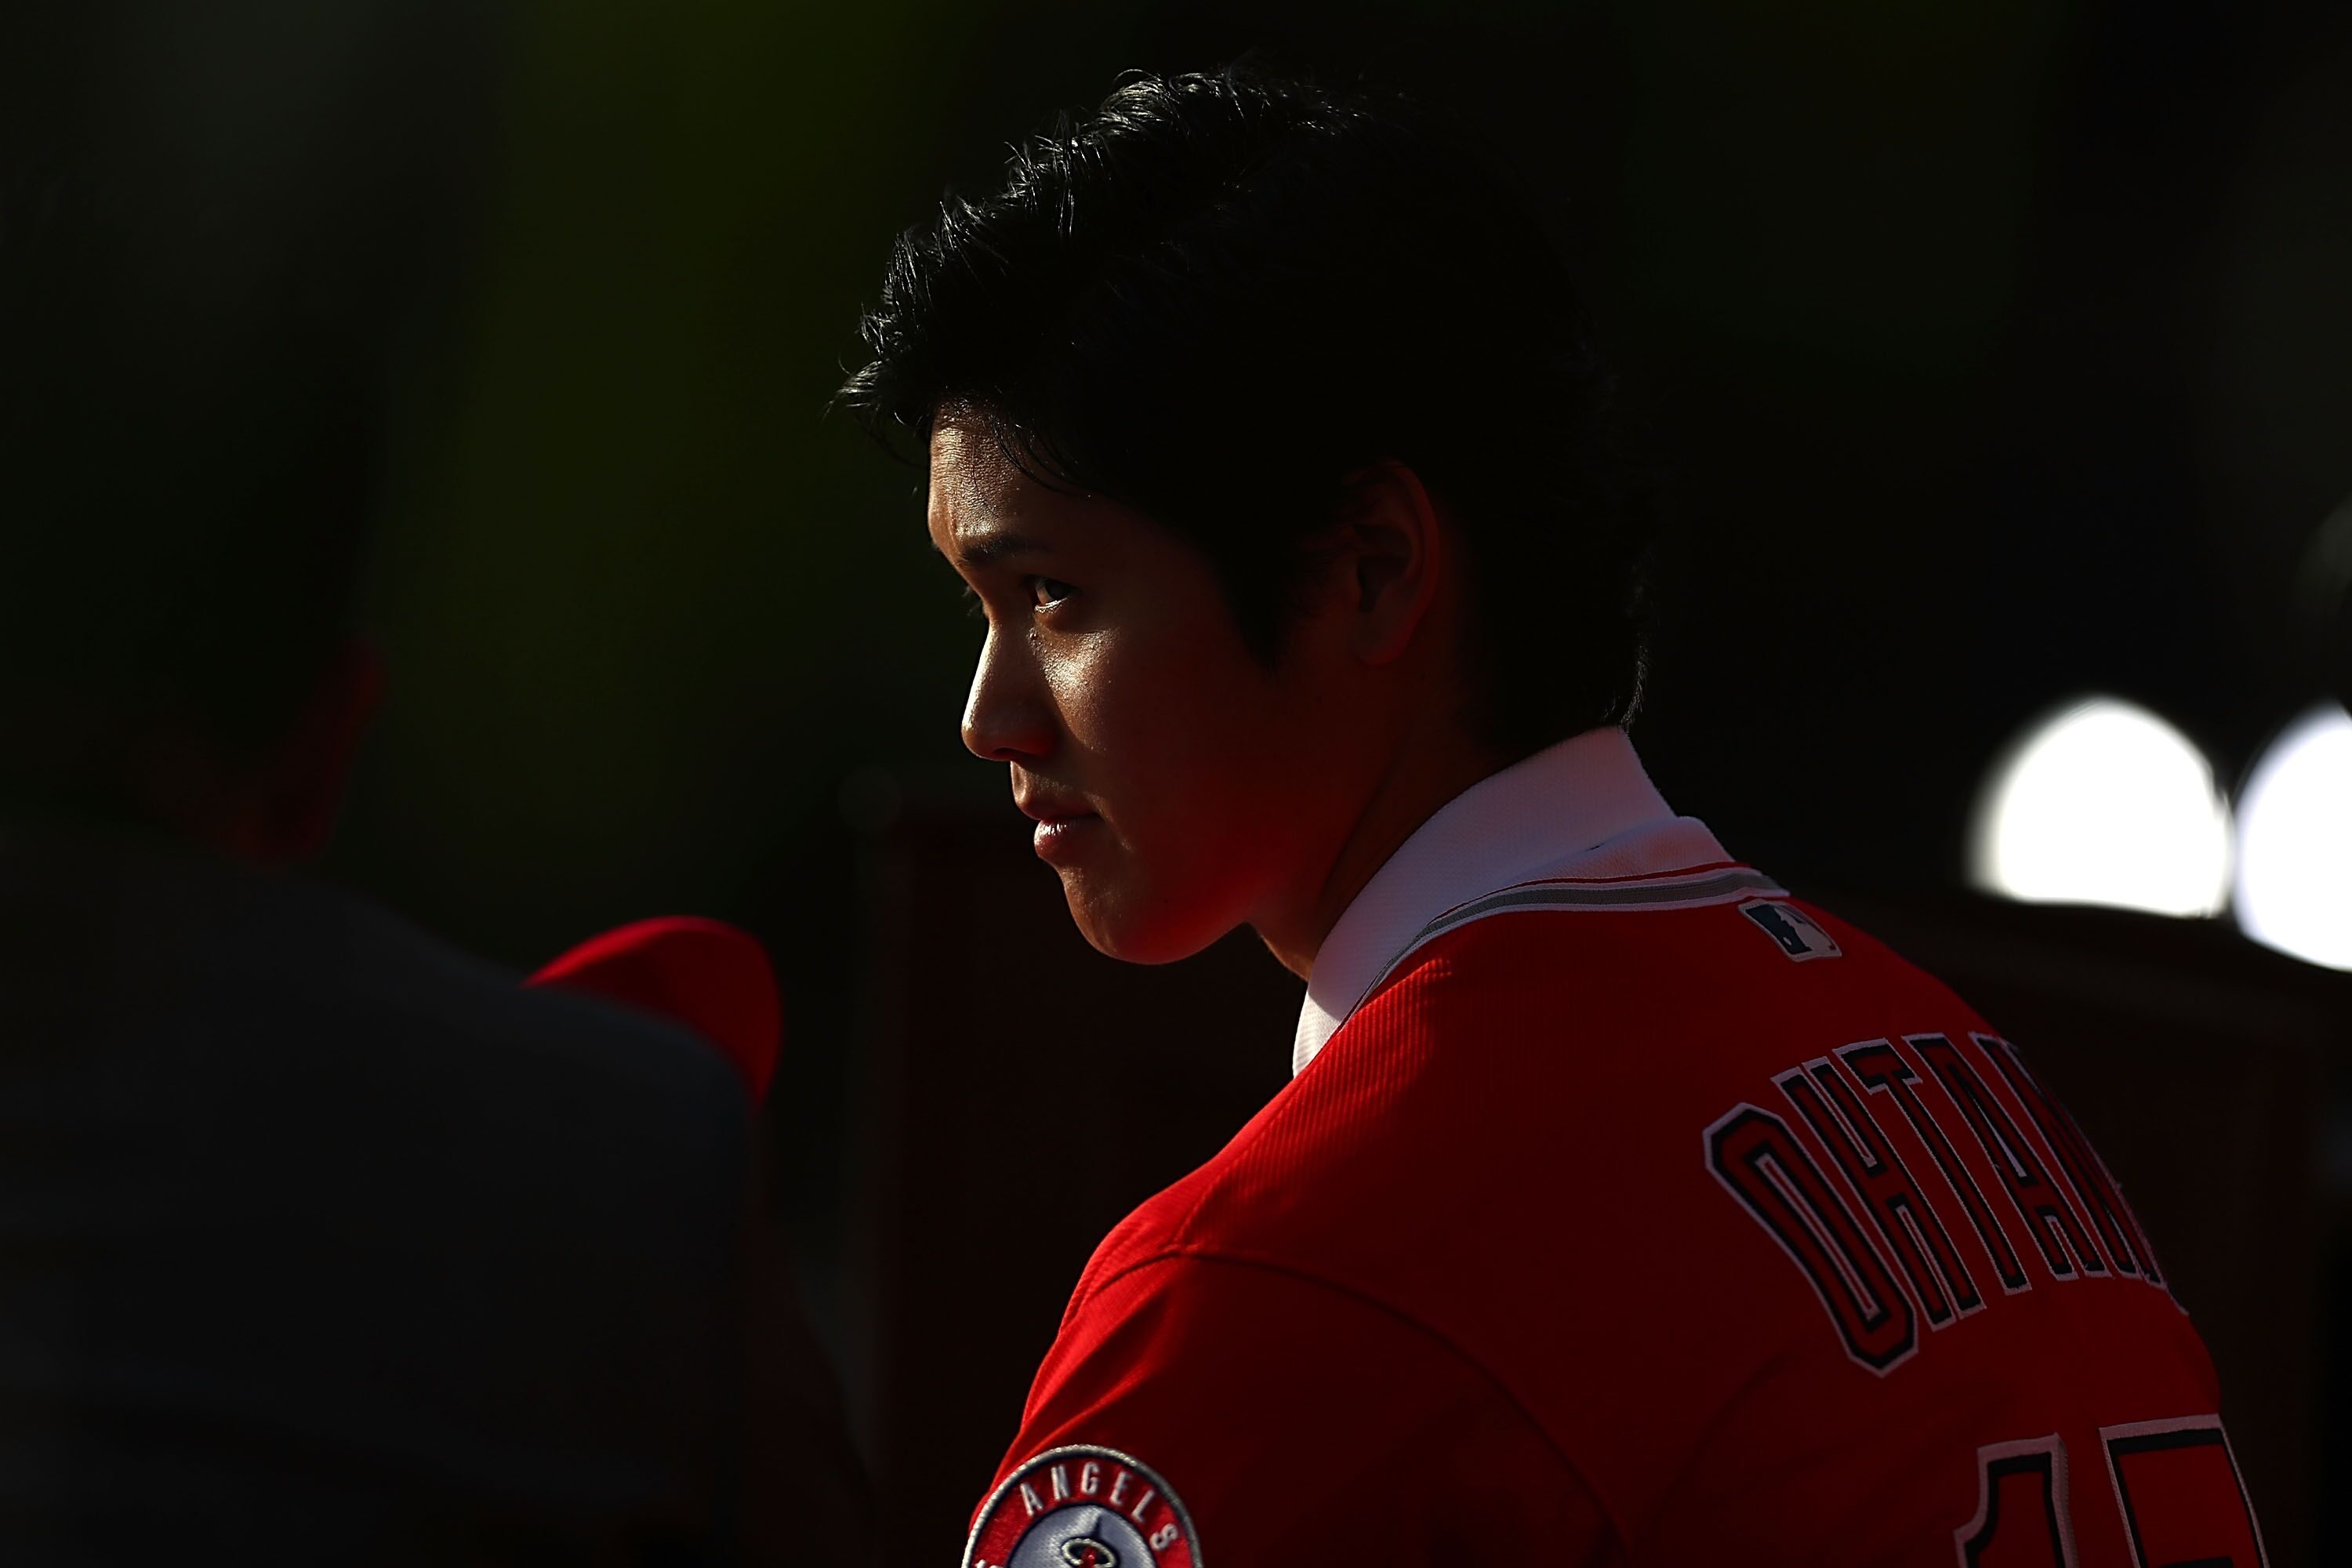 890489688-los-angeles-angels-of-anaheim-introduce-shohei-ohtani.jpg